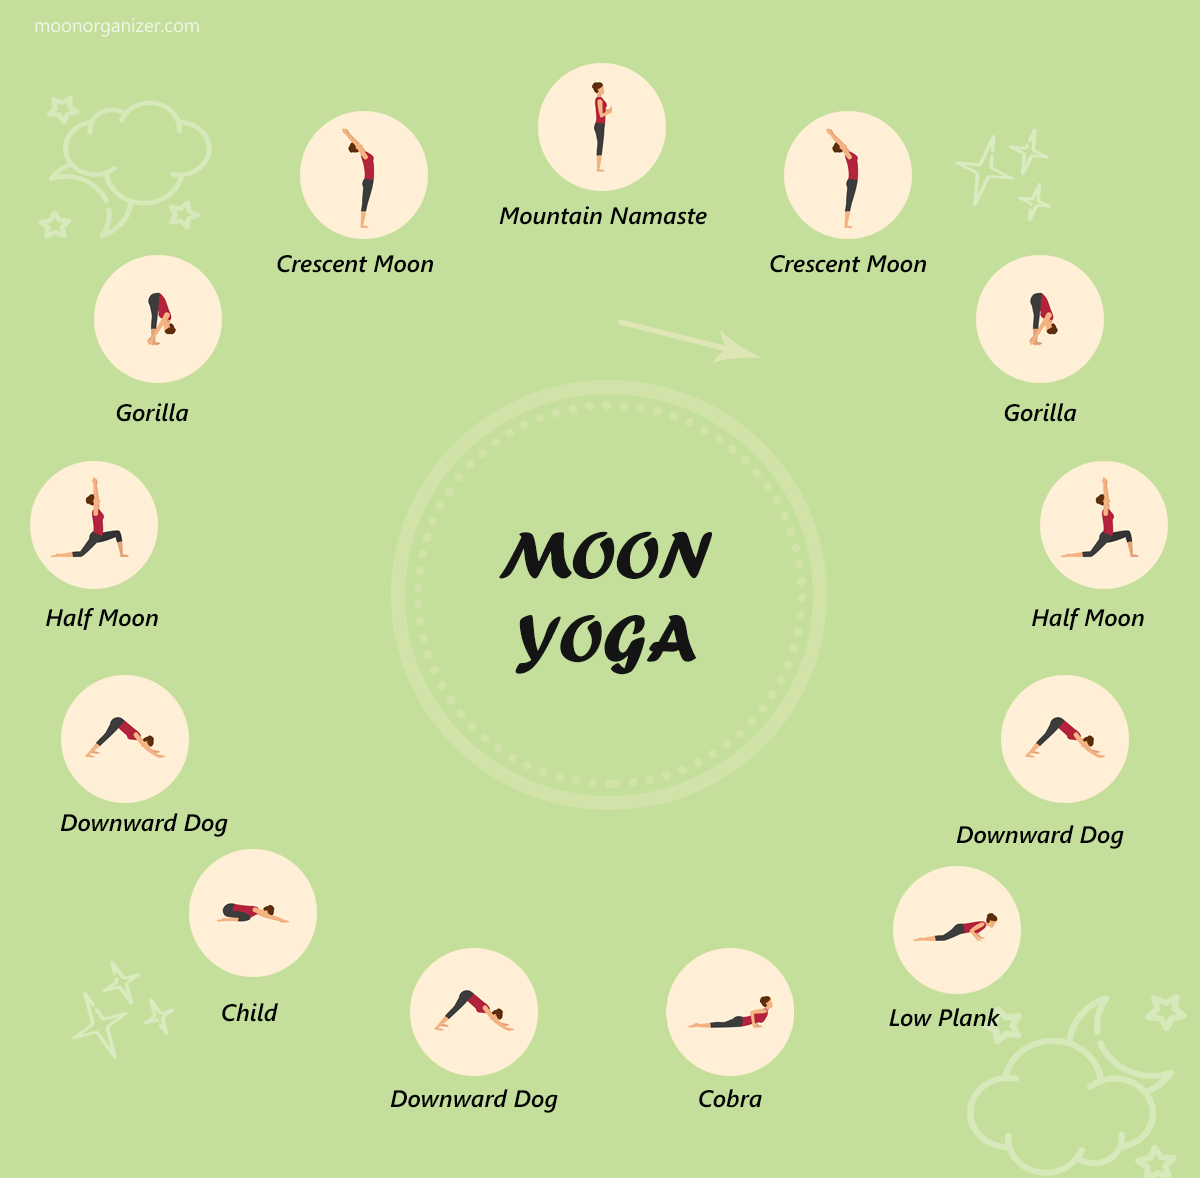 Moon Yoga infographic - moon salutation practice